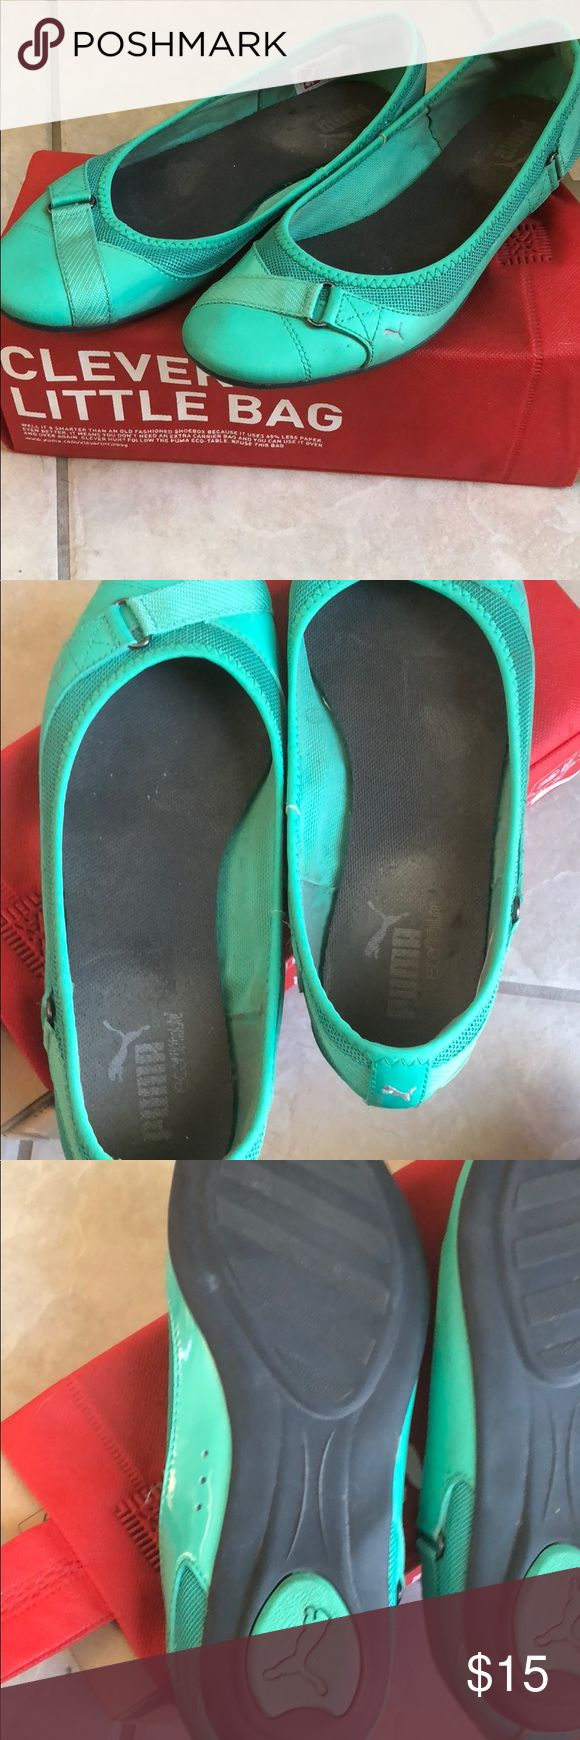 """Mint Puma Women's Flats size 8 Cute and comfy Puma flats in a great """"mint leaf"""" color.  US Women's size 8. Comes with original box.  Style: Bixley Puma Shoes Flats & Loafers"""